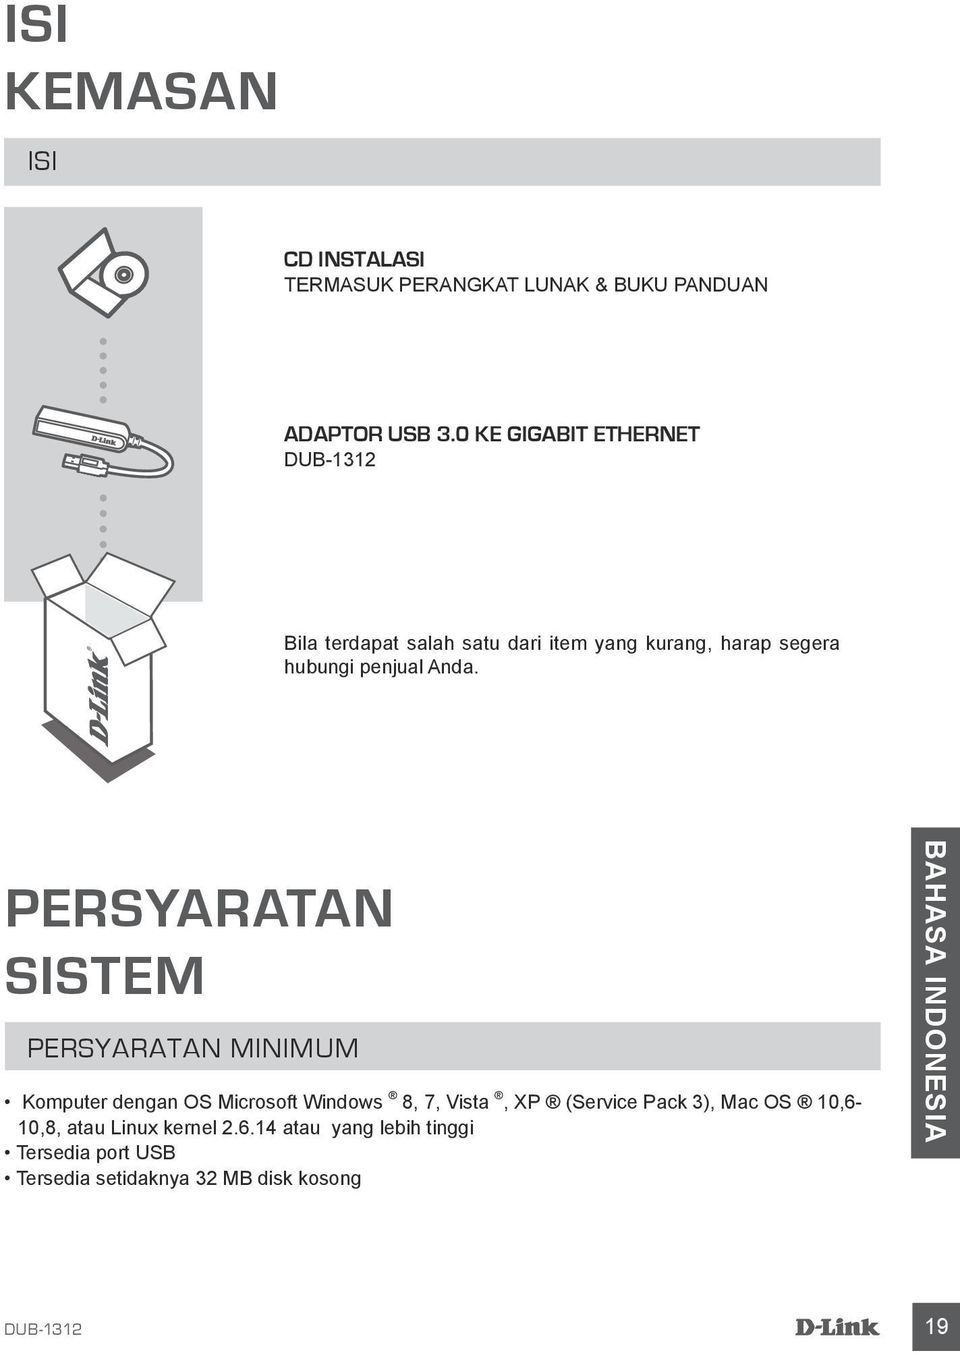 PERSYARATAN SISTEM PERSYARATAN MINIMUM Komputer dengan OS Microsoft Windows 8, 7, Vista, XP (Service Pack 3),